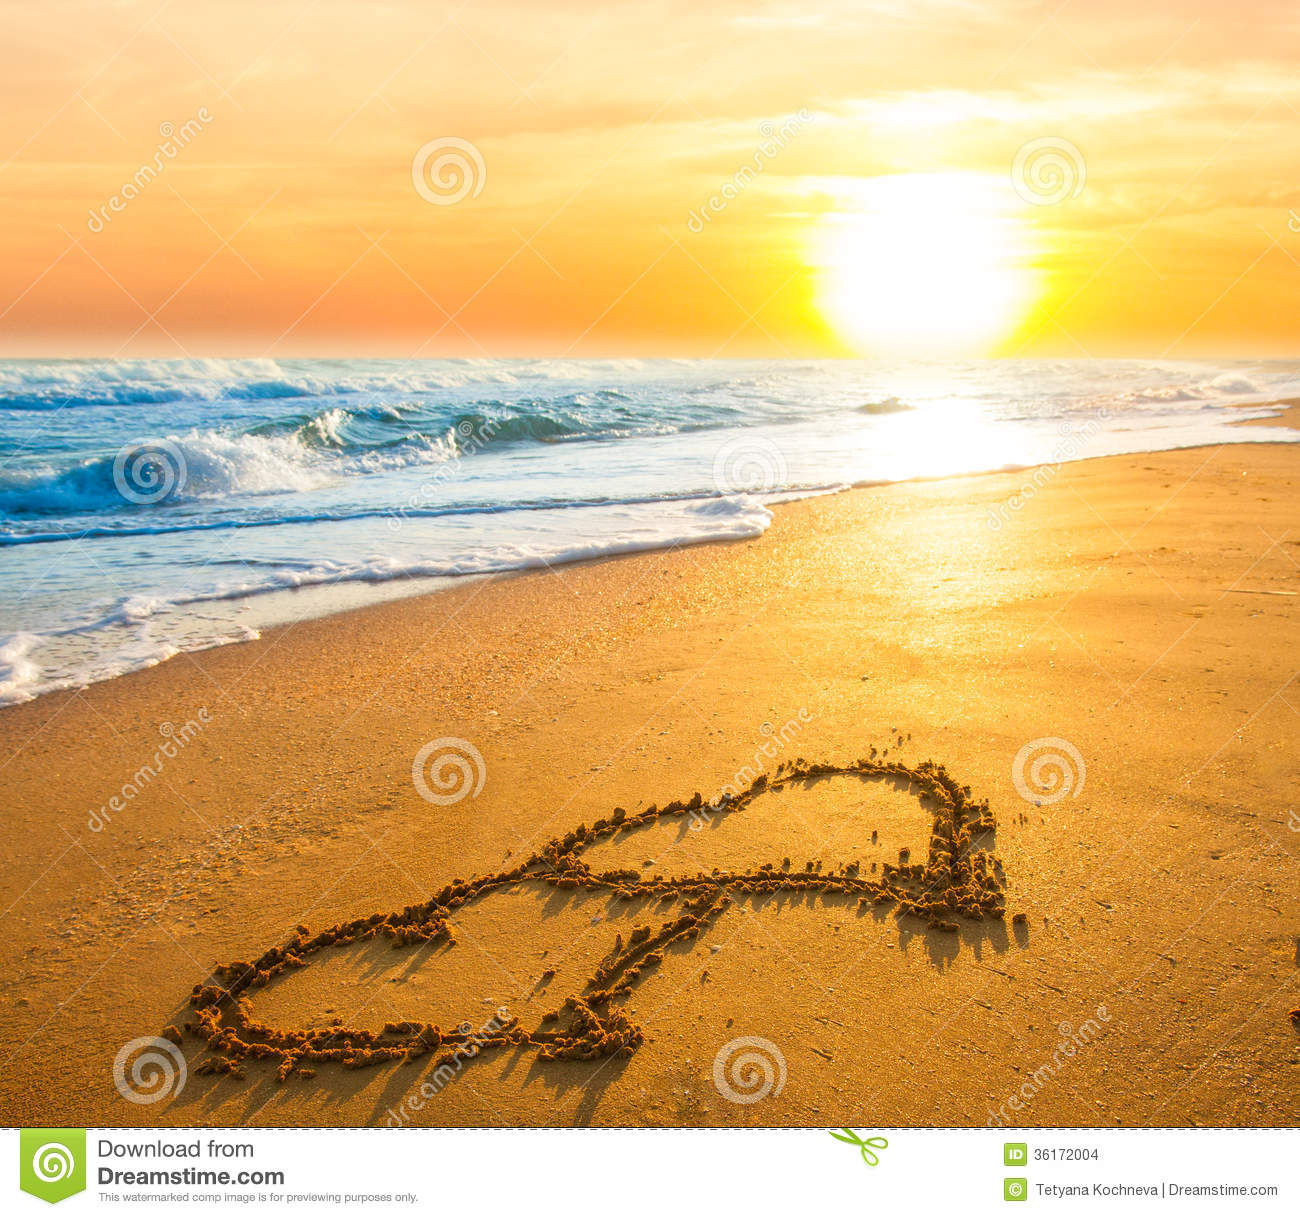 Two Hearts On Beach Sand Stock Images - Image: 36172004